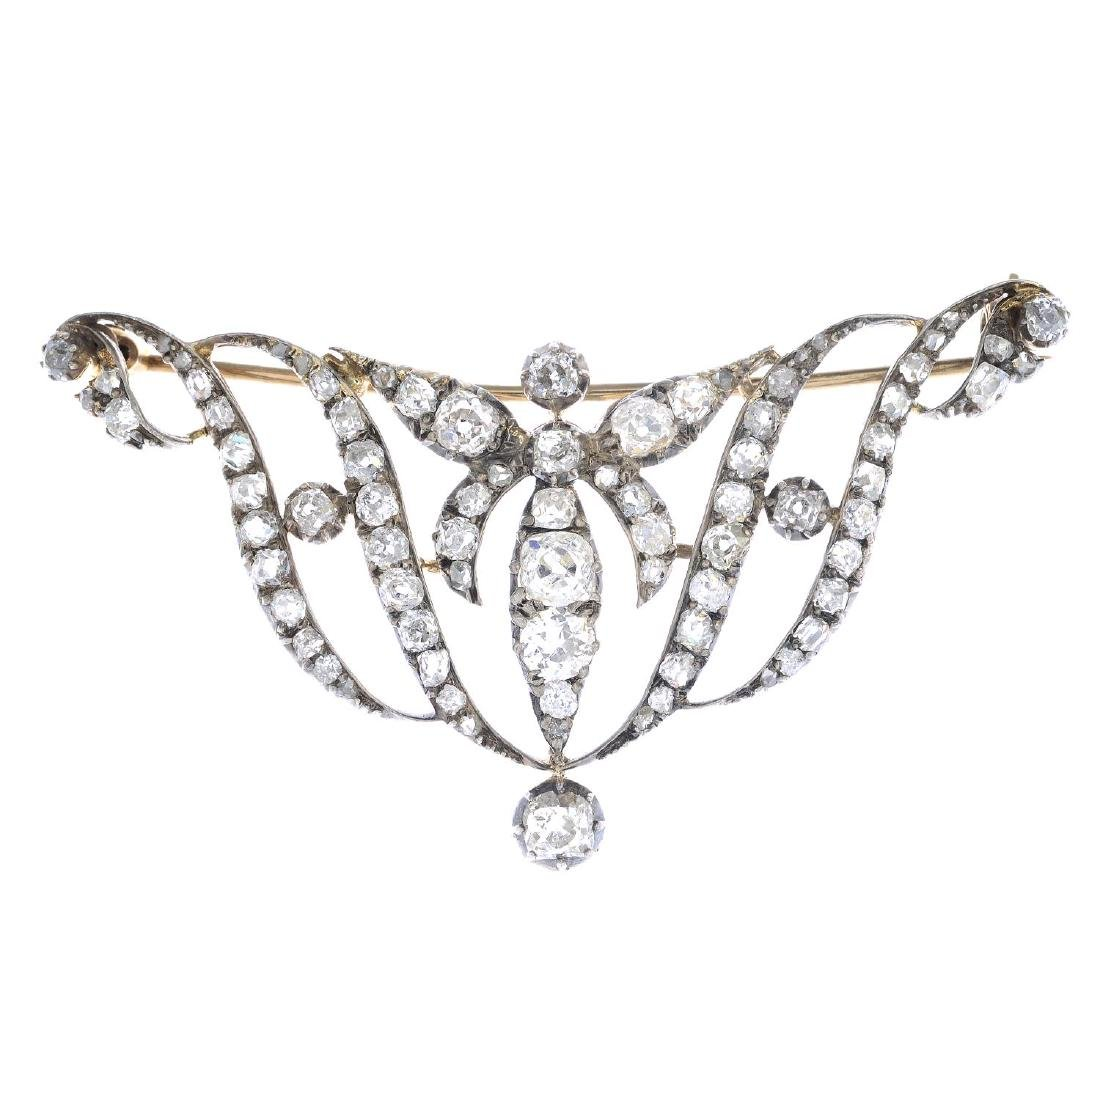 A 19th century silver and gold diamond brooch. Designed